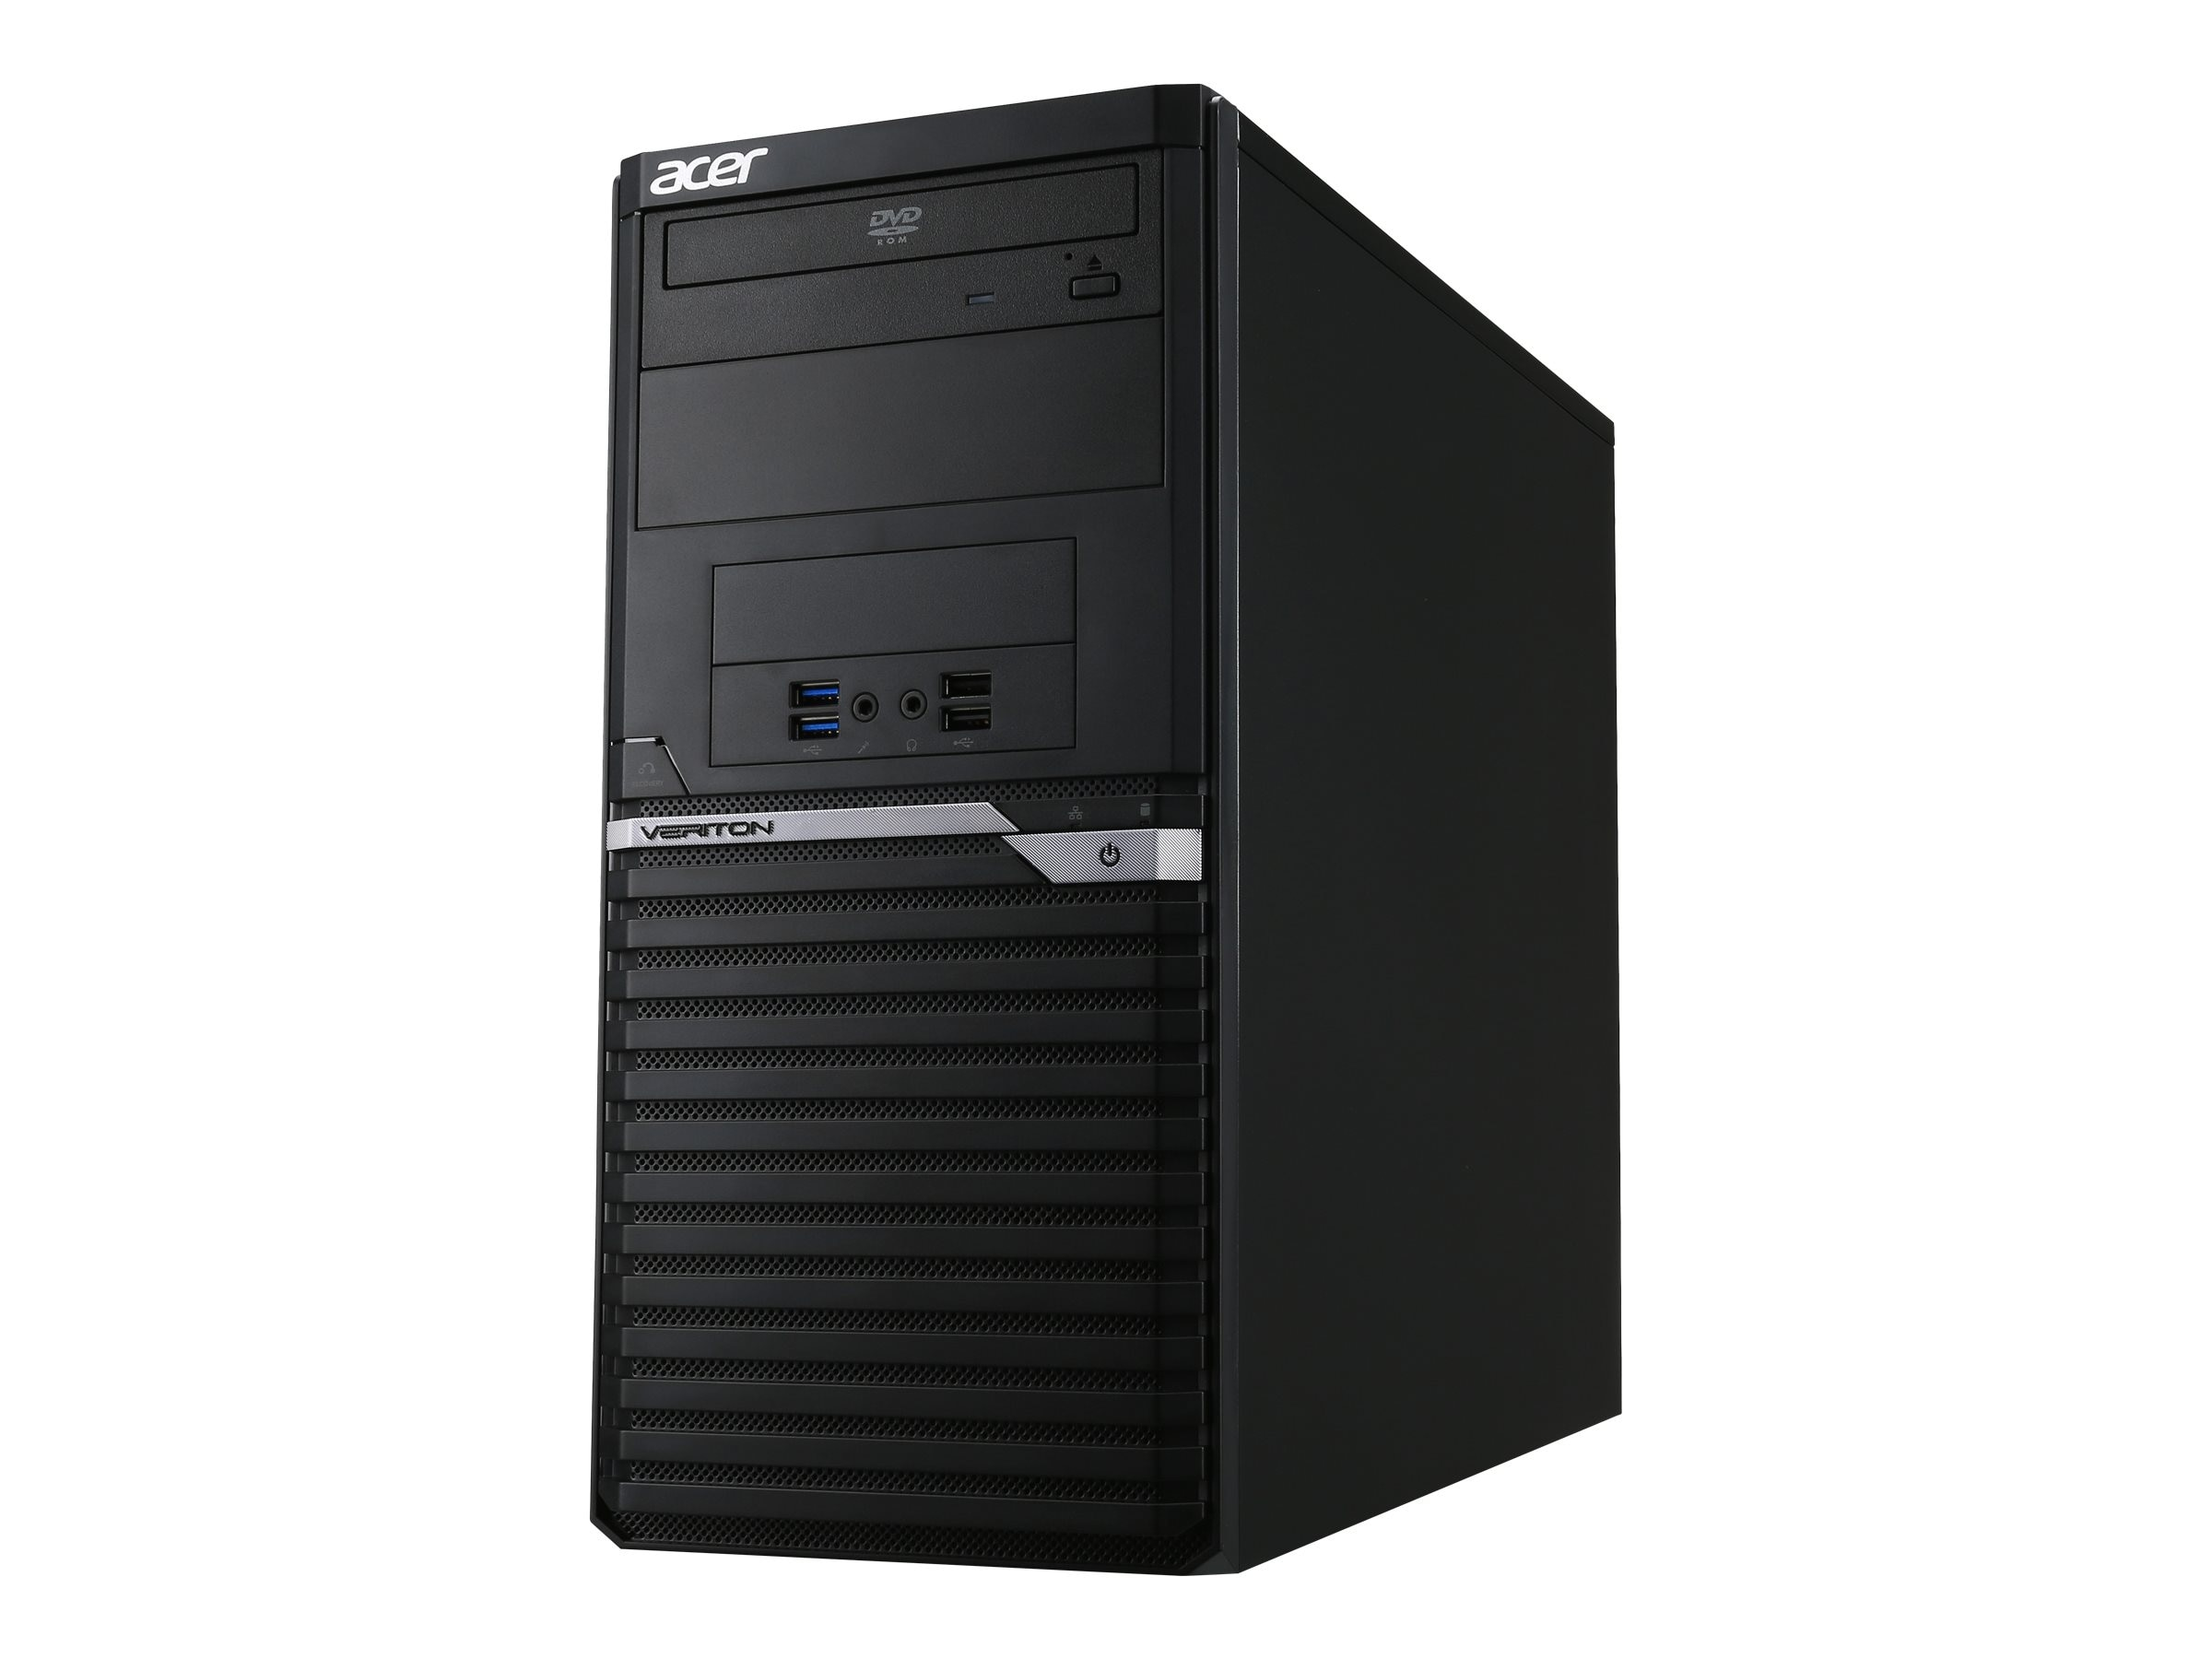 Acer Veriton M6640G-70020 3.2GHz Core i5 8GB RAM 240GB hard drive